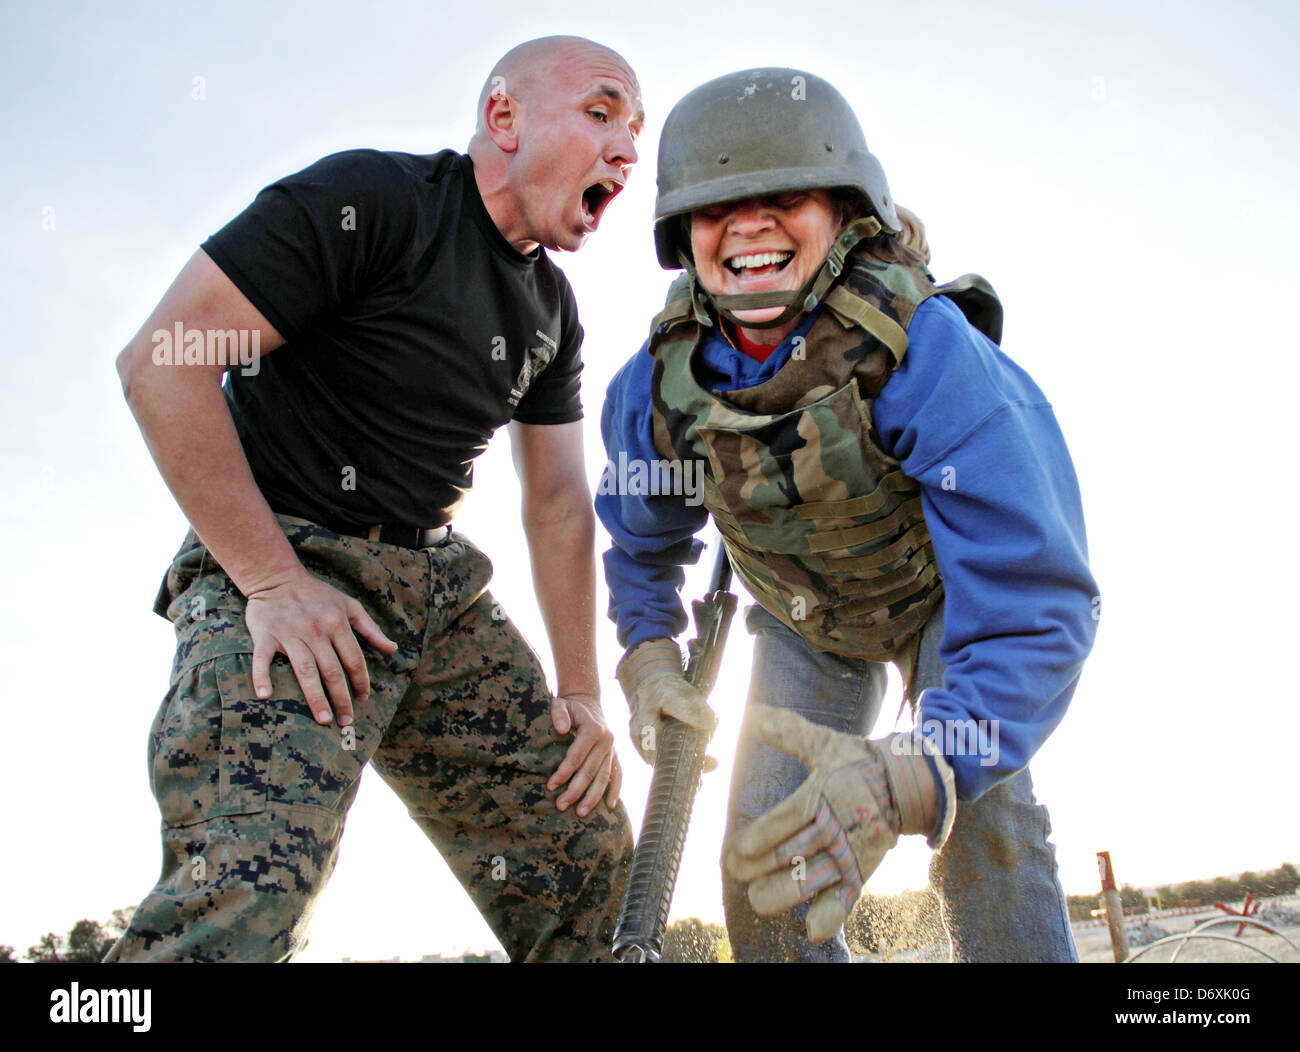 US Marine Corps drill instructors screams at a civilian teacher who volunteered to tackle the bayonet assault course - Stock Image